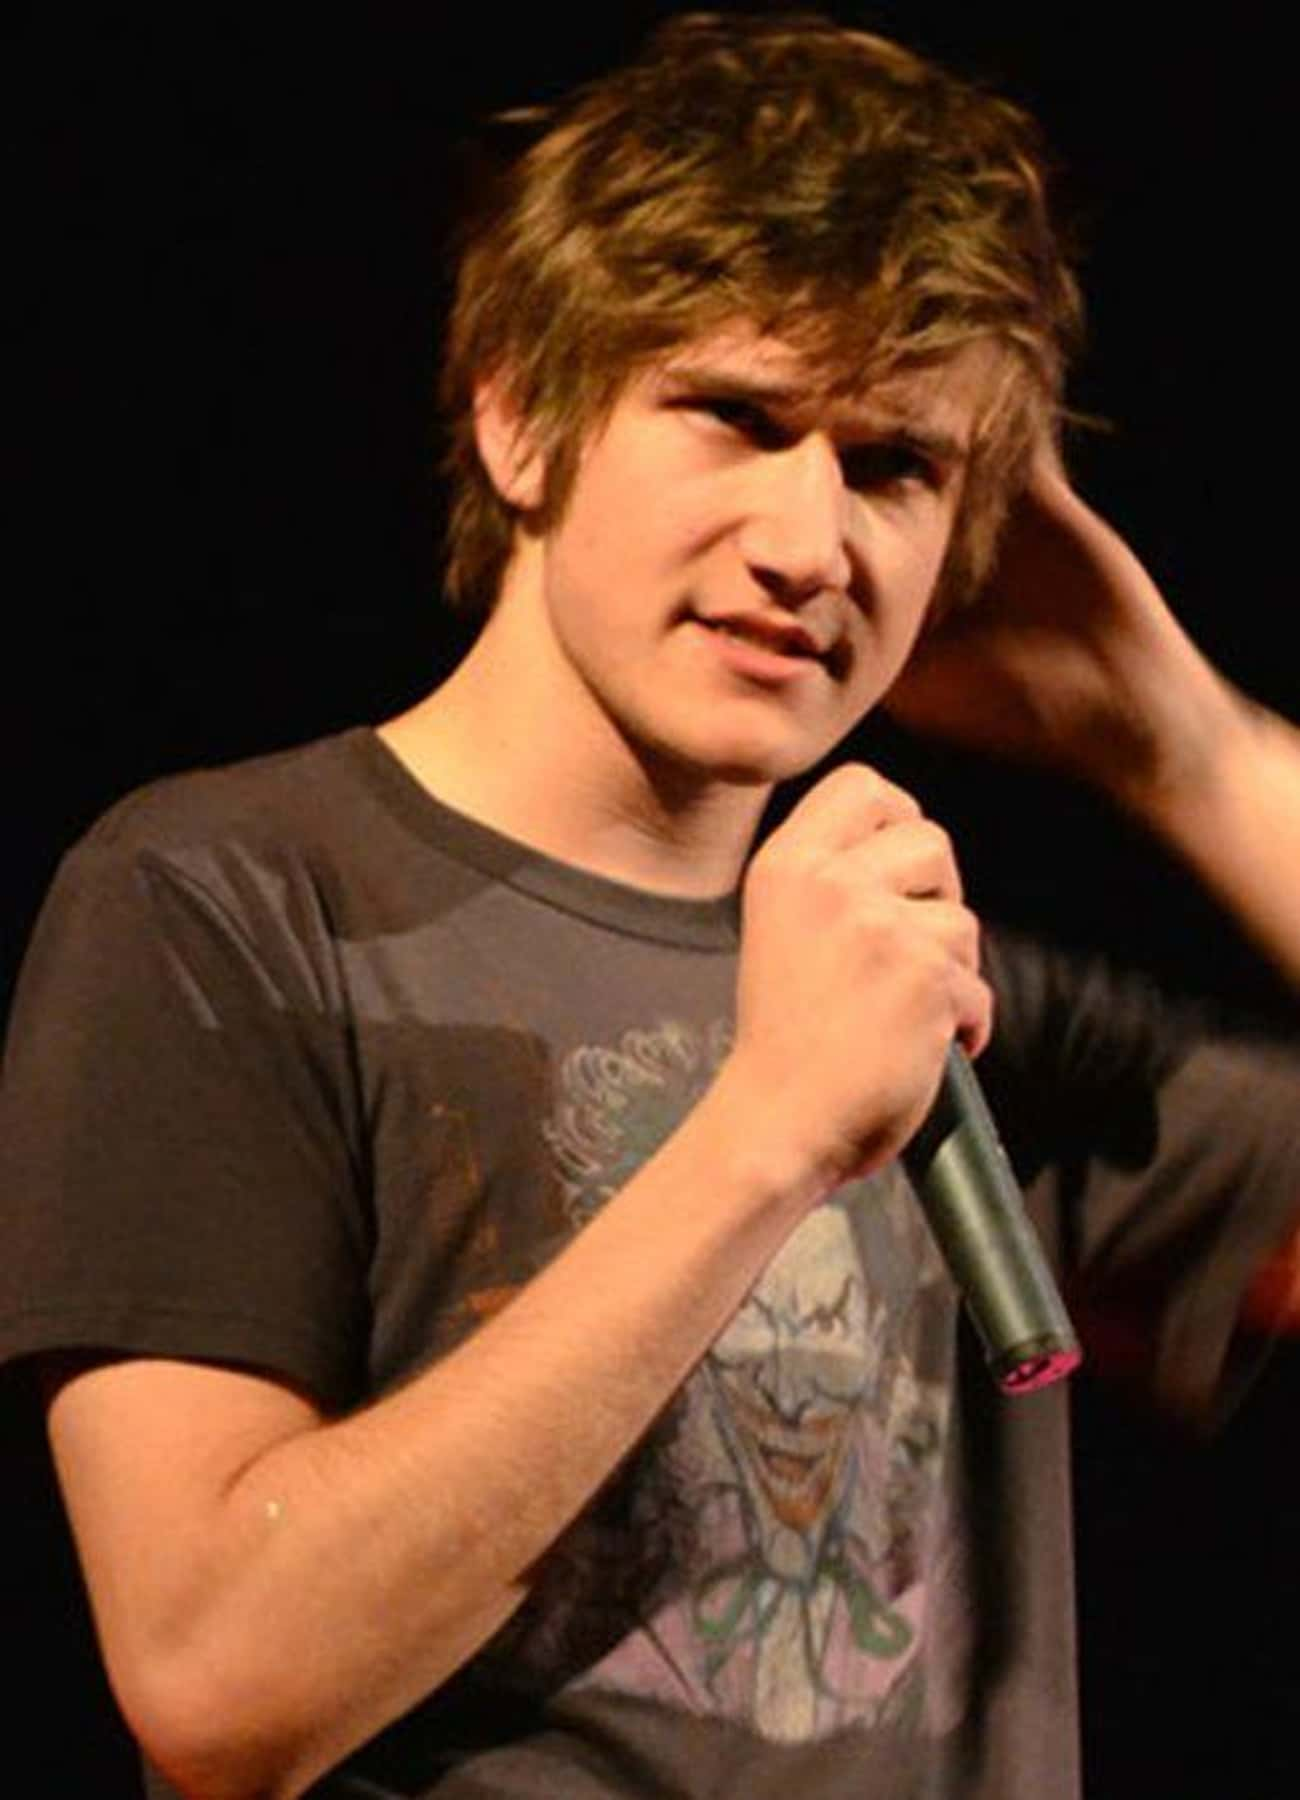 Ex-Girlfriend is listed (or ranked) 3 on the list The Best Bo Burnham Jokes, Ranked